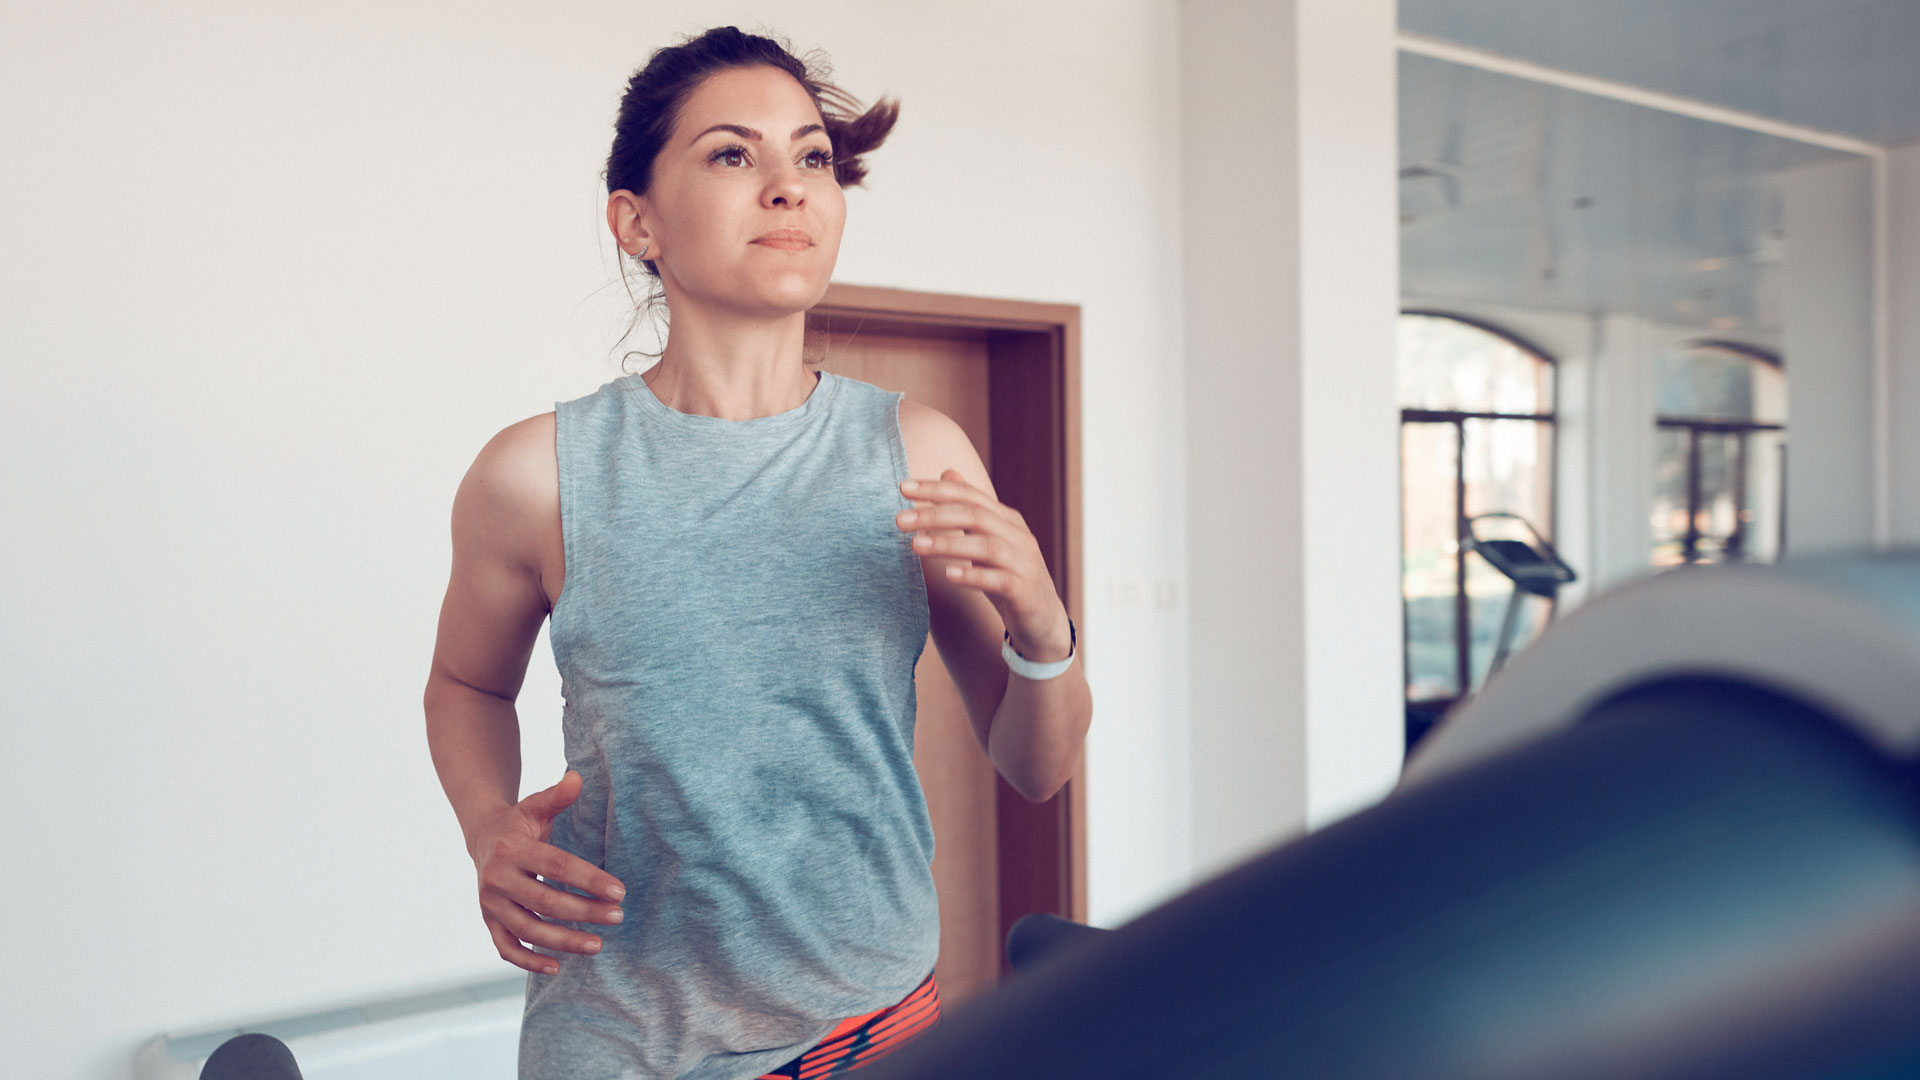 healthy and active woman running on treadmill, exercising inside gym.